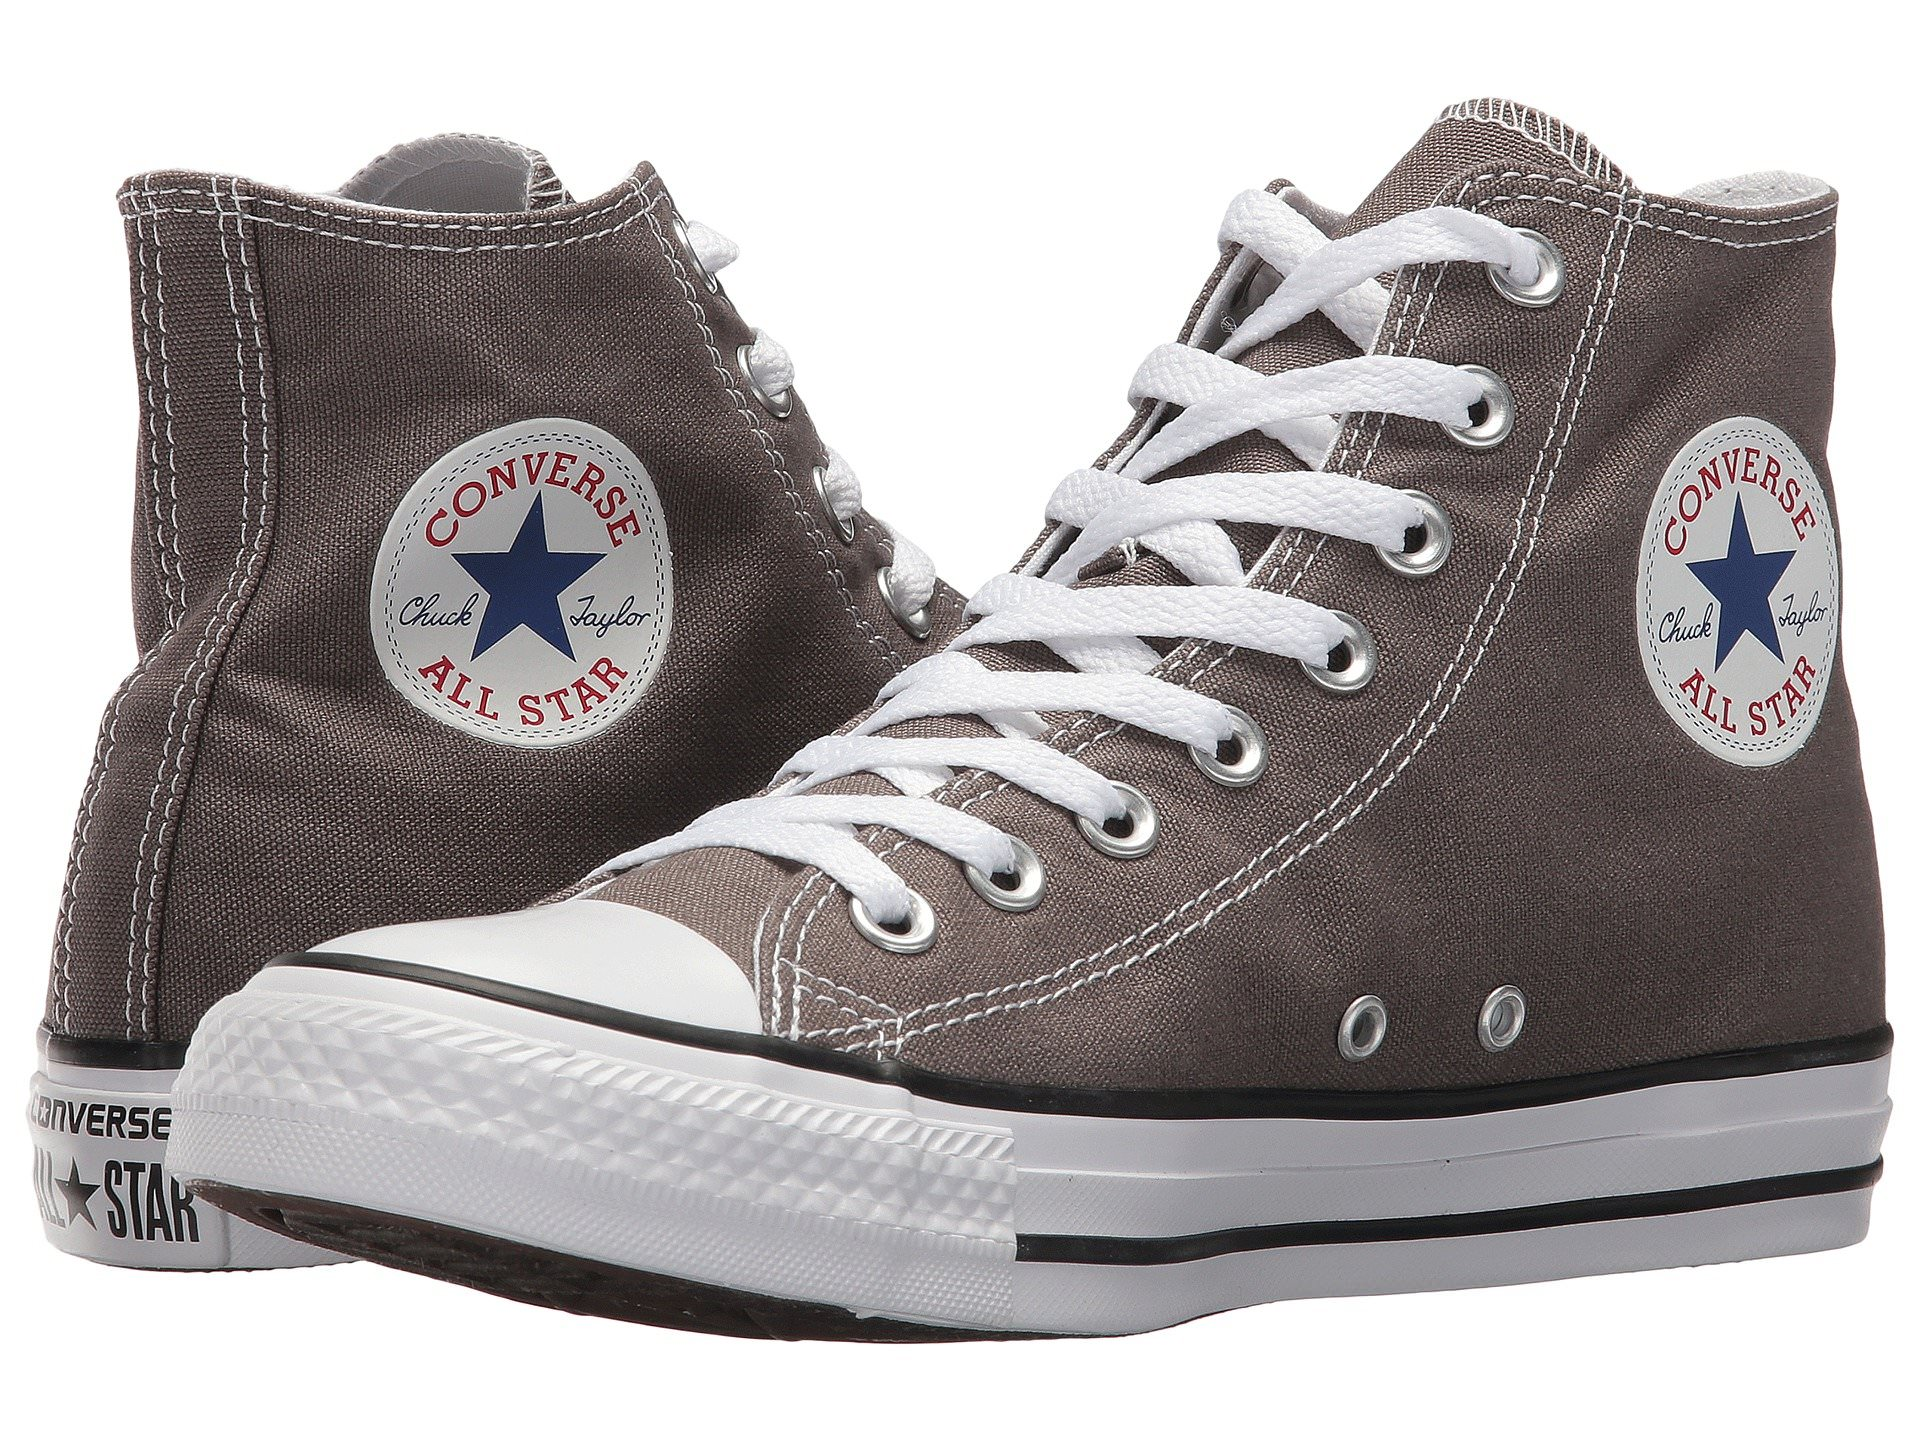 bf9107ecf8afe7 Converse CHUCK TAYLOR ALL STAR Unisex Charcoal Gray Canvas HighTop ...